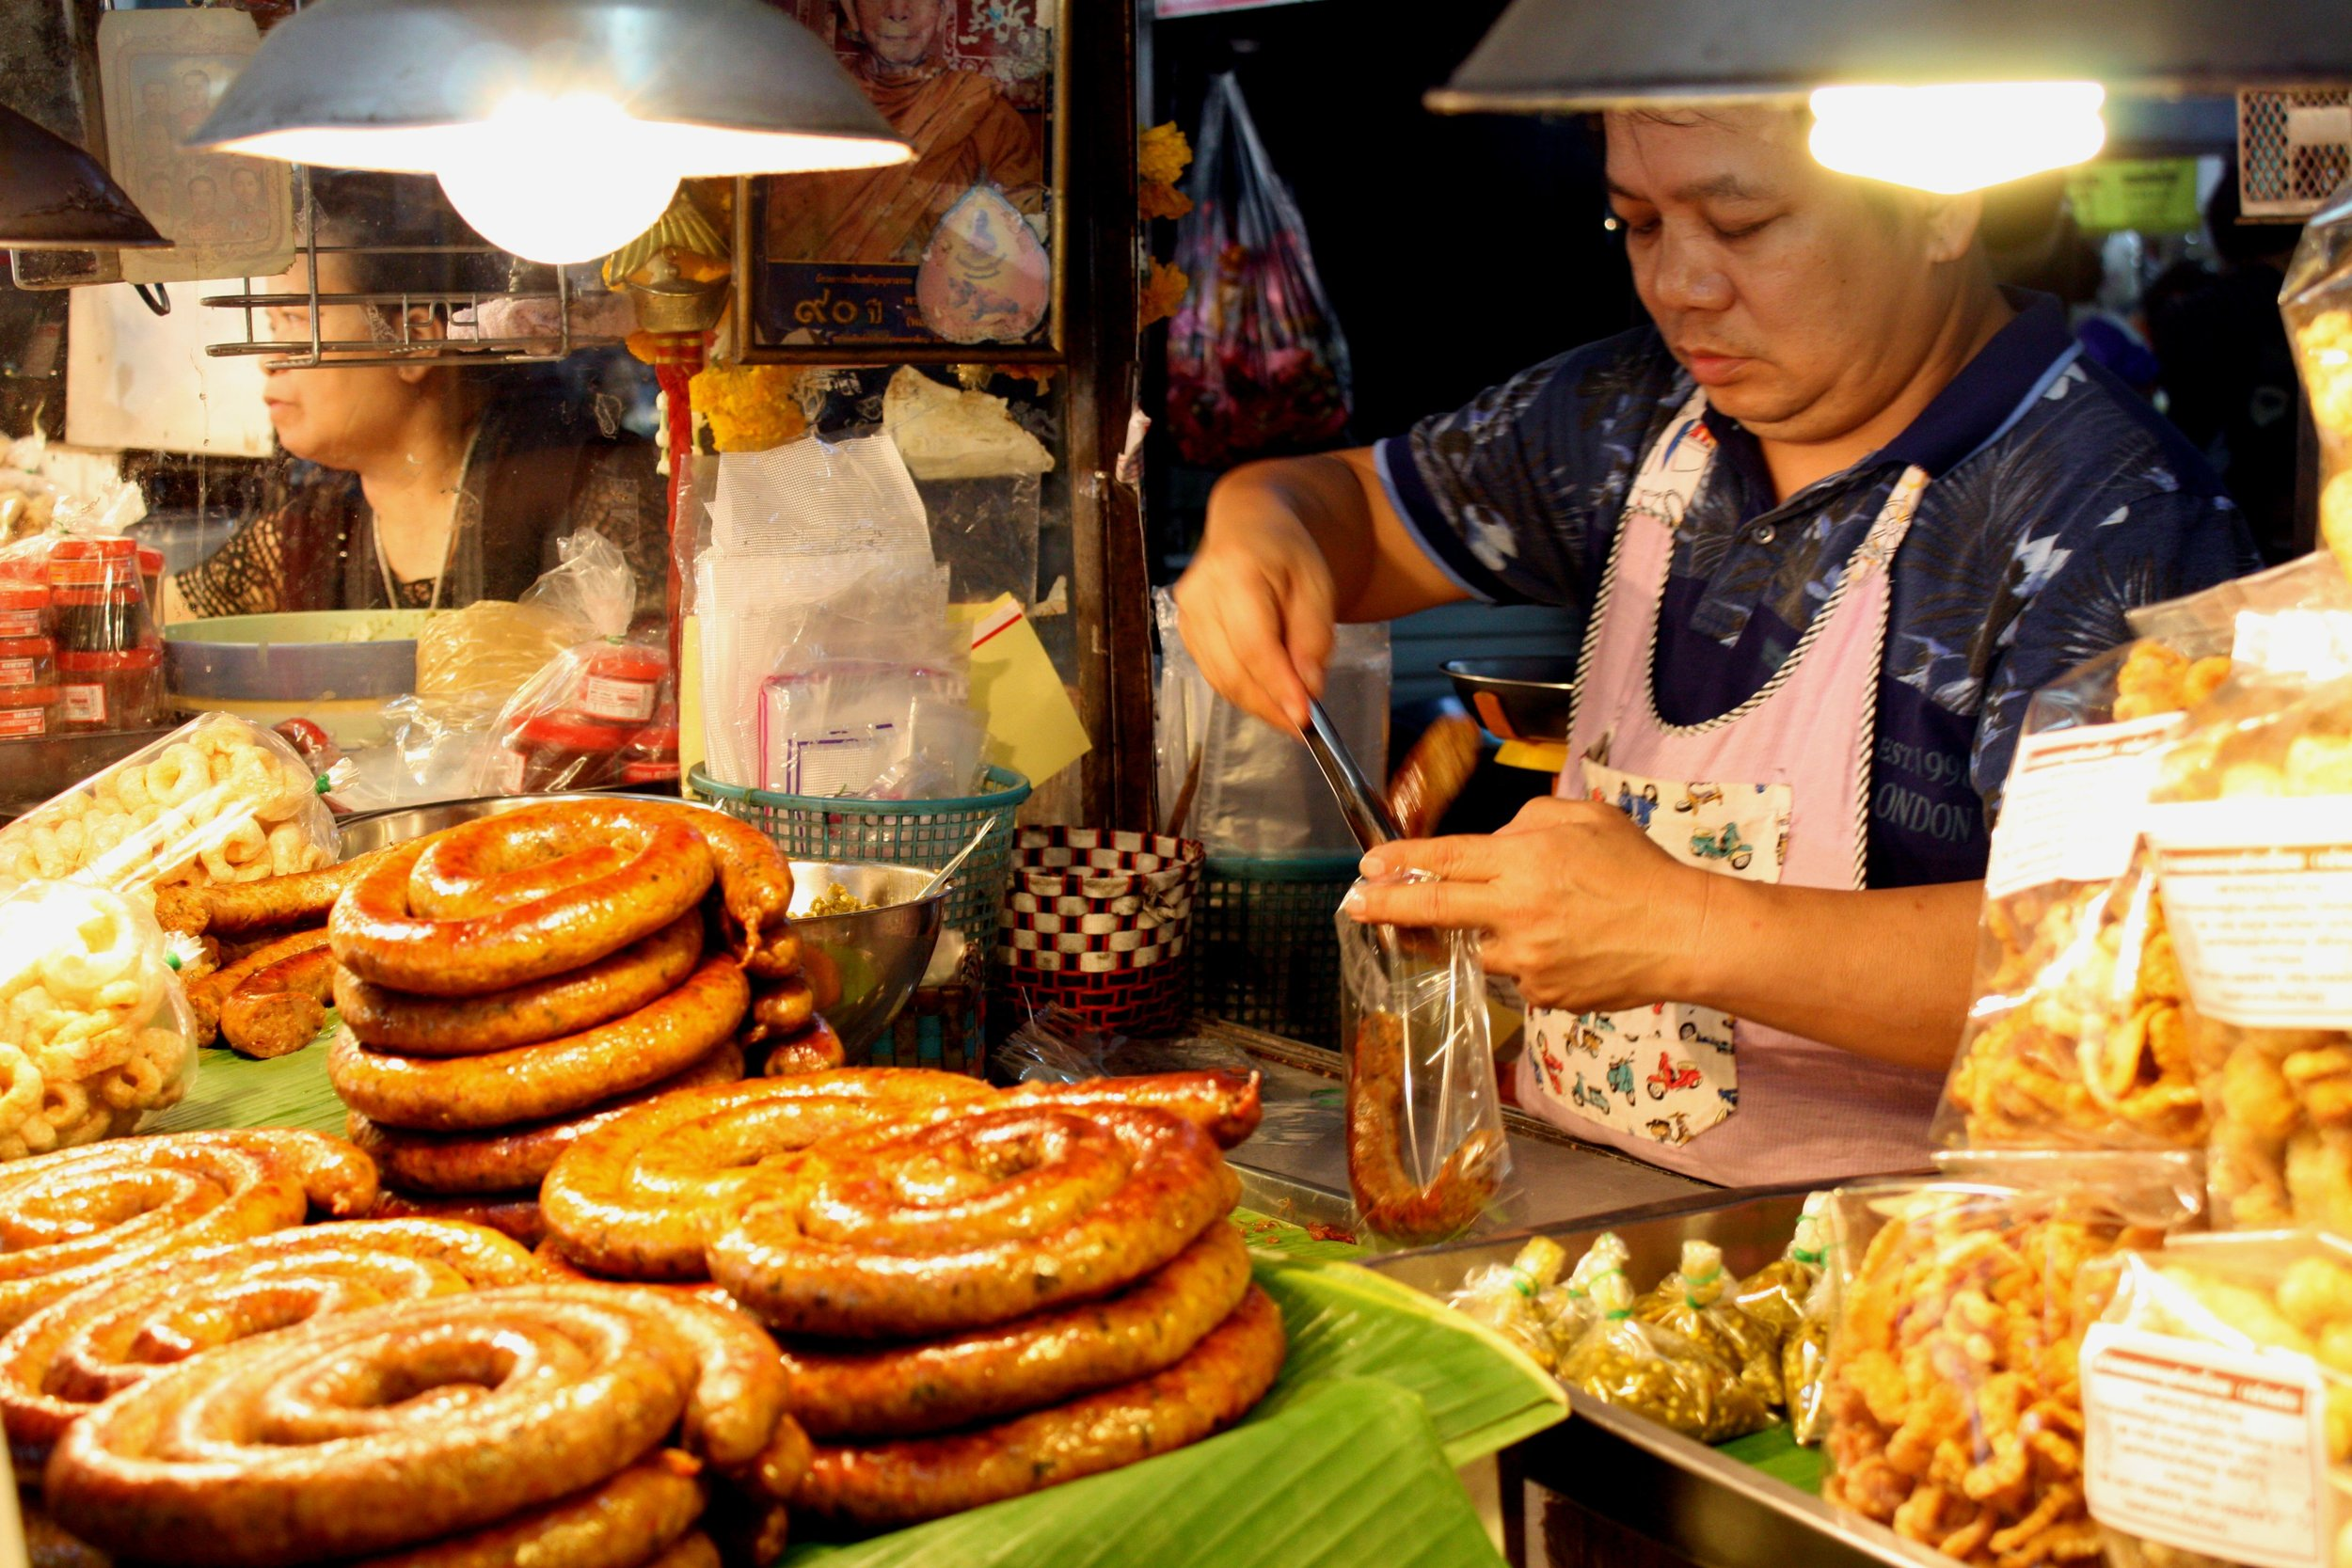 Sai Ua (Chiang Mai Sausage) are flavoured with lemongrass, kaffir lime leaves, galangal, turmeric and chilies.